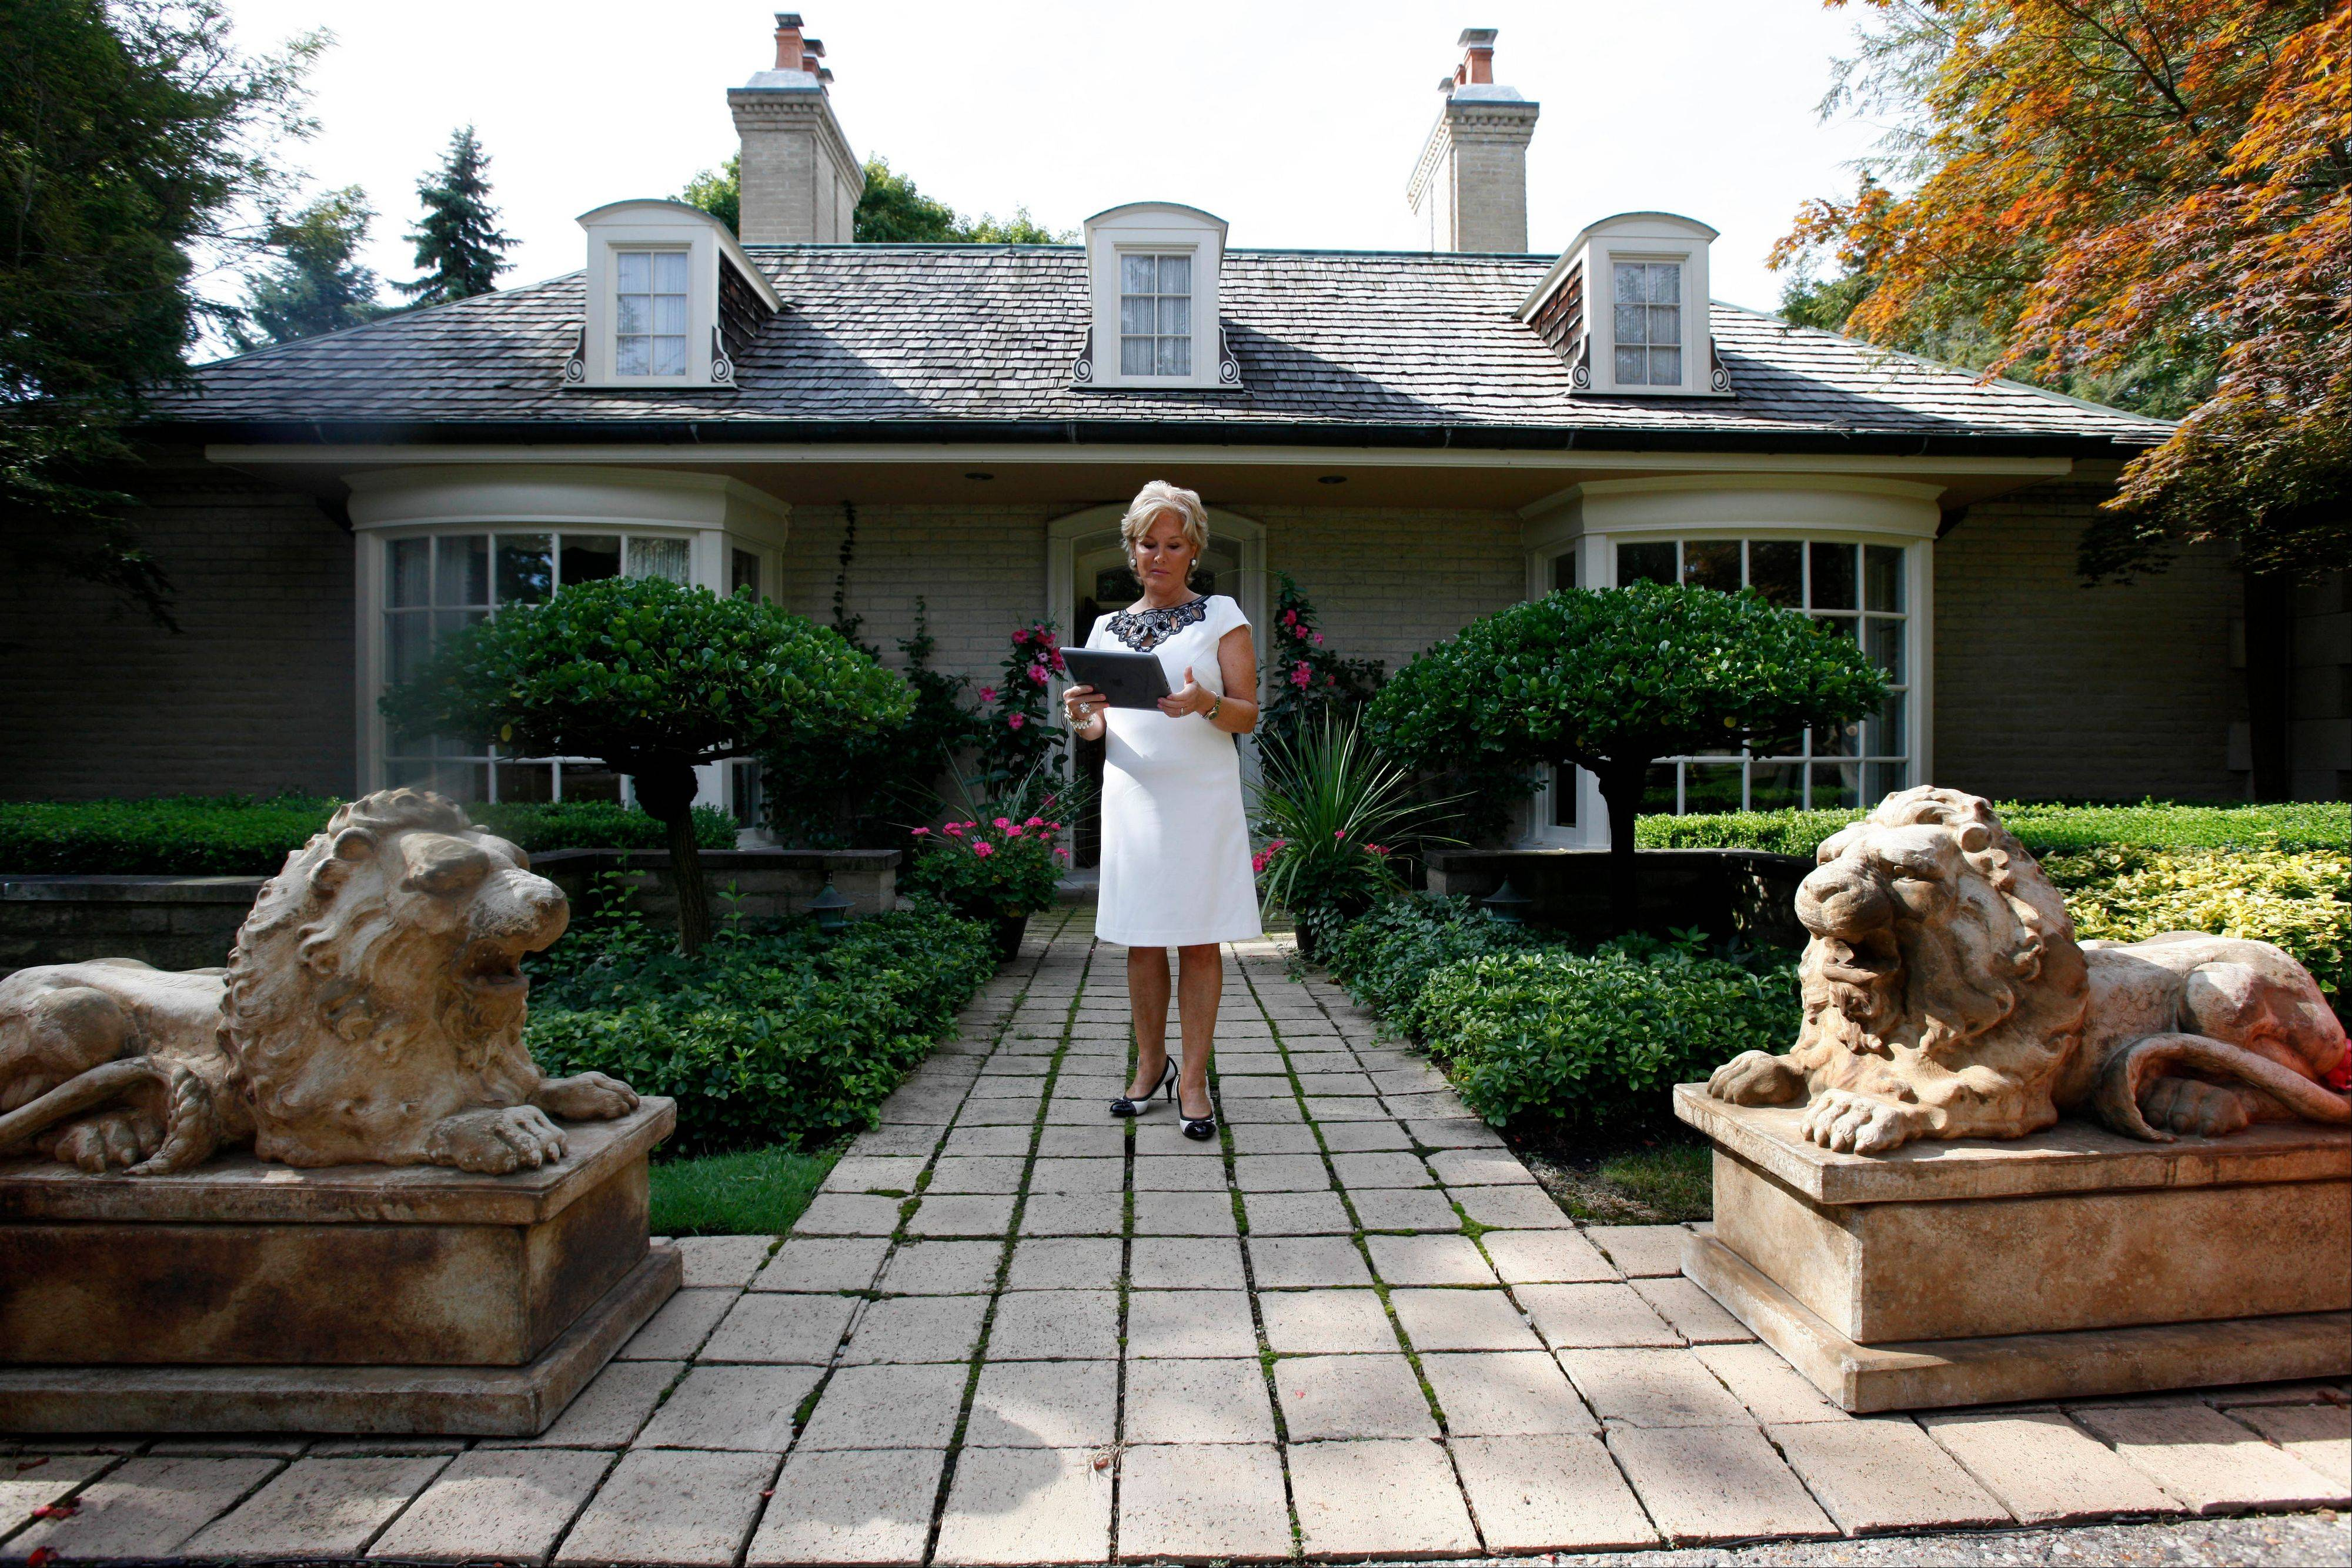 Real estate agent Ronni Keating waits outside for a client to view a home in Bloomfield Hills, Mich. Think of this housing market as bipolar. In the luxury sector, the recession is a memory and sales and prices are rising. But everywhere else, the market is moving sideways or getting worse.